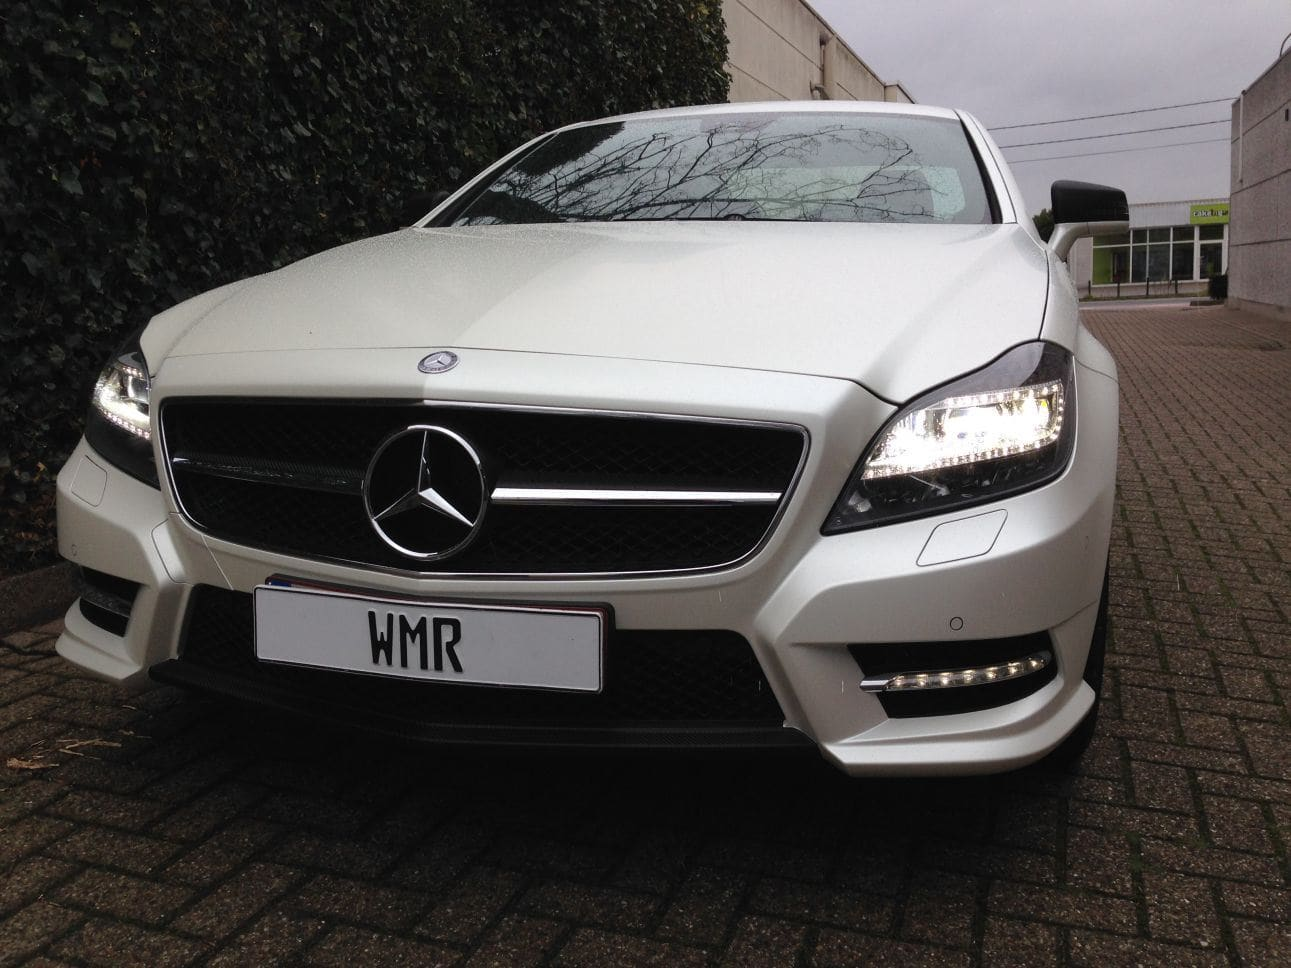 Mercedes CLS met White Satin Pearl Wrap, Carwrapping door Wrapmyride.nu Foto-nr:6203, ©2021